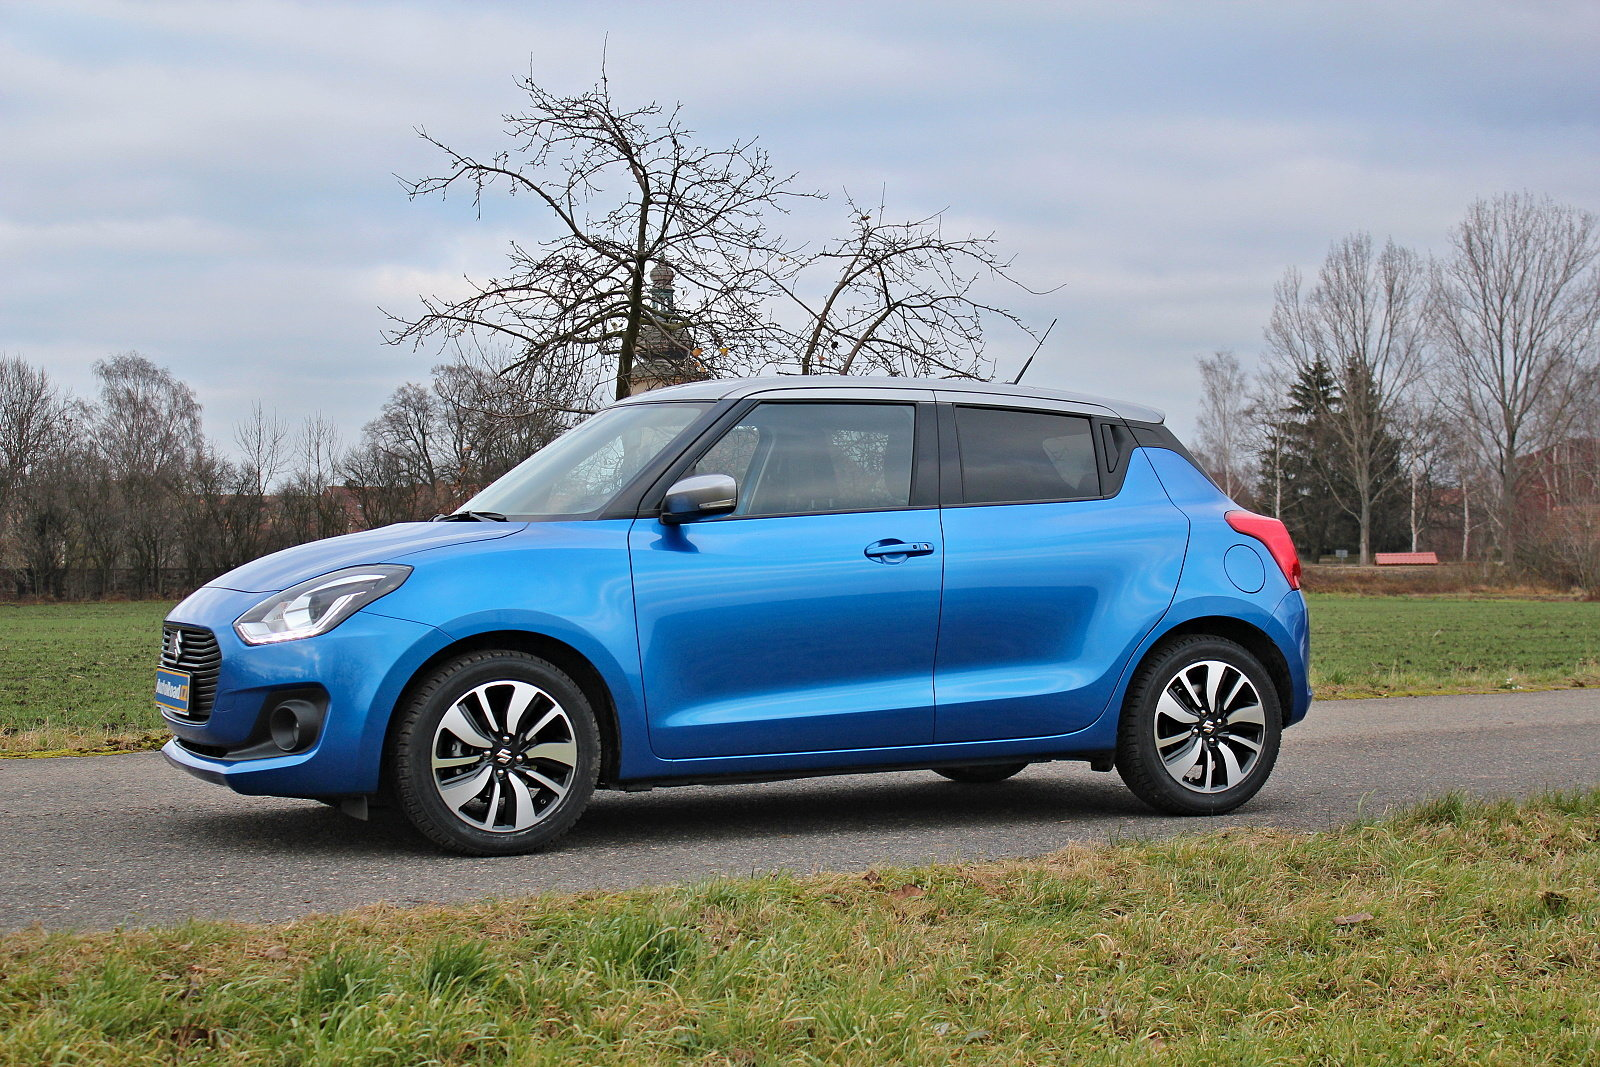 Suzuki Swift 1.0 SHVS